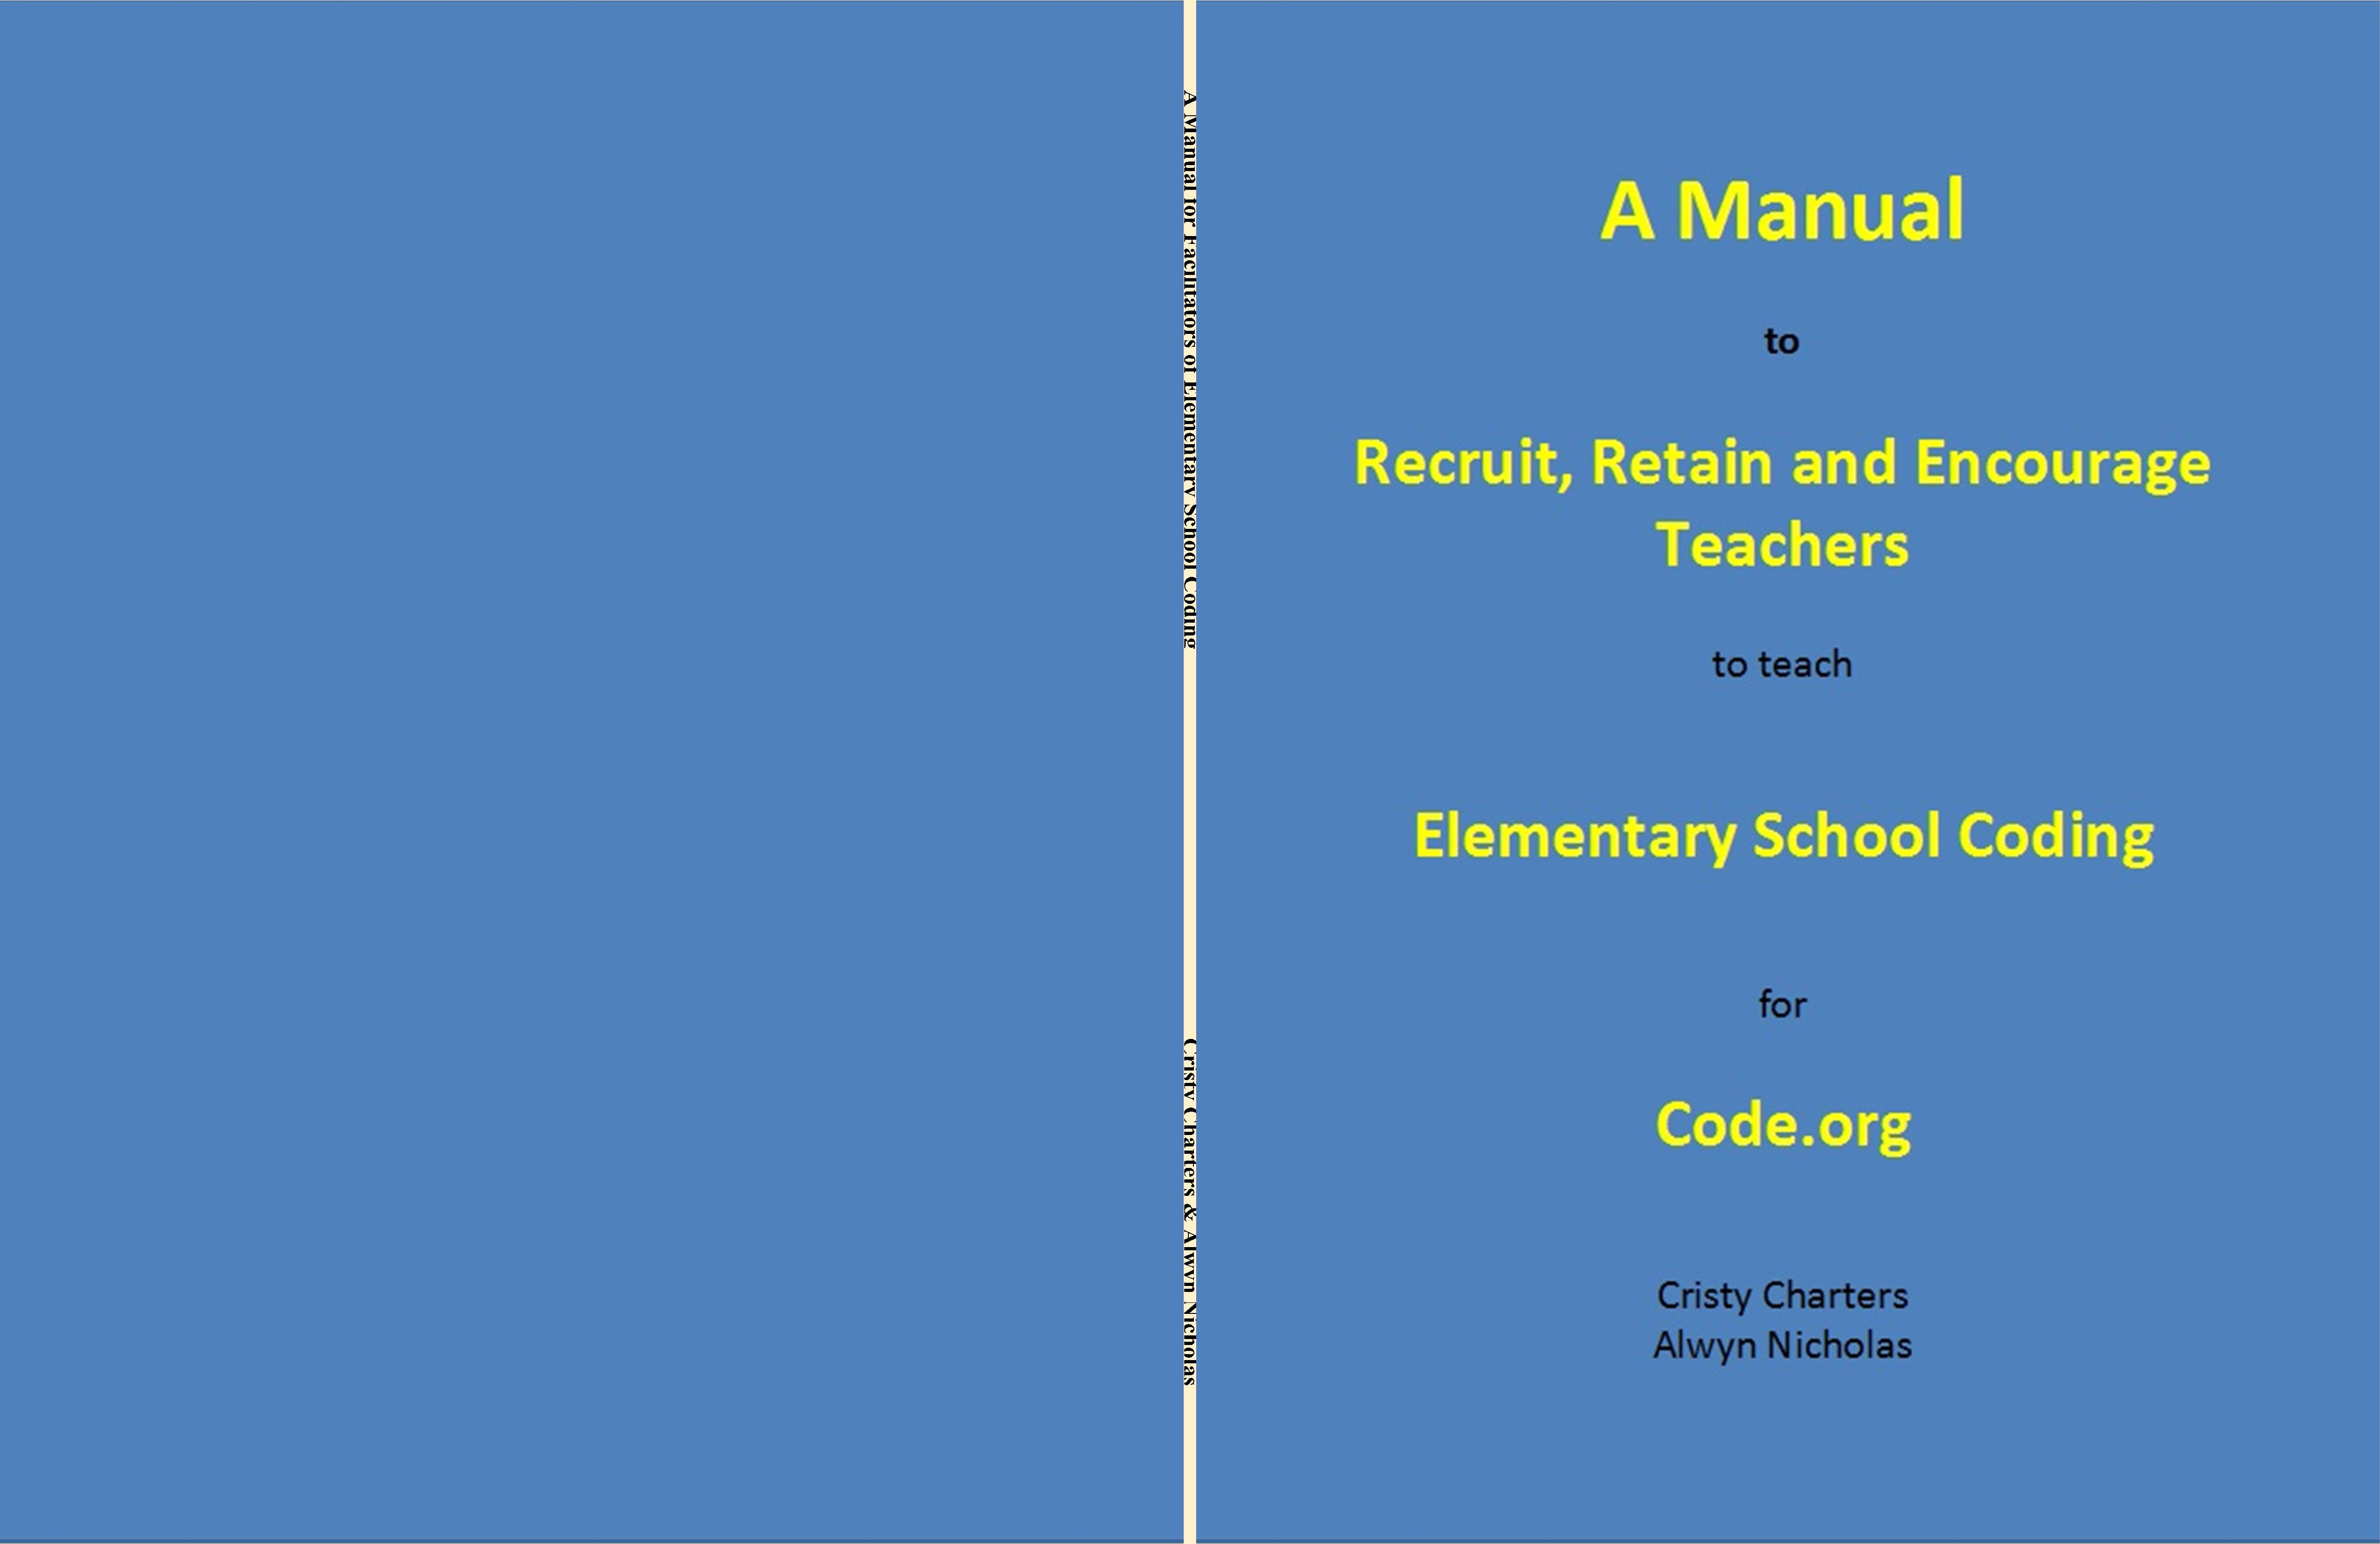 A Manual for Facilitators of Elementary School Coding cover image